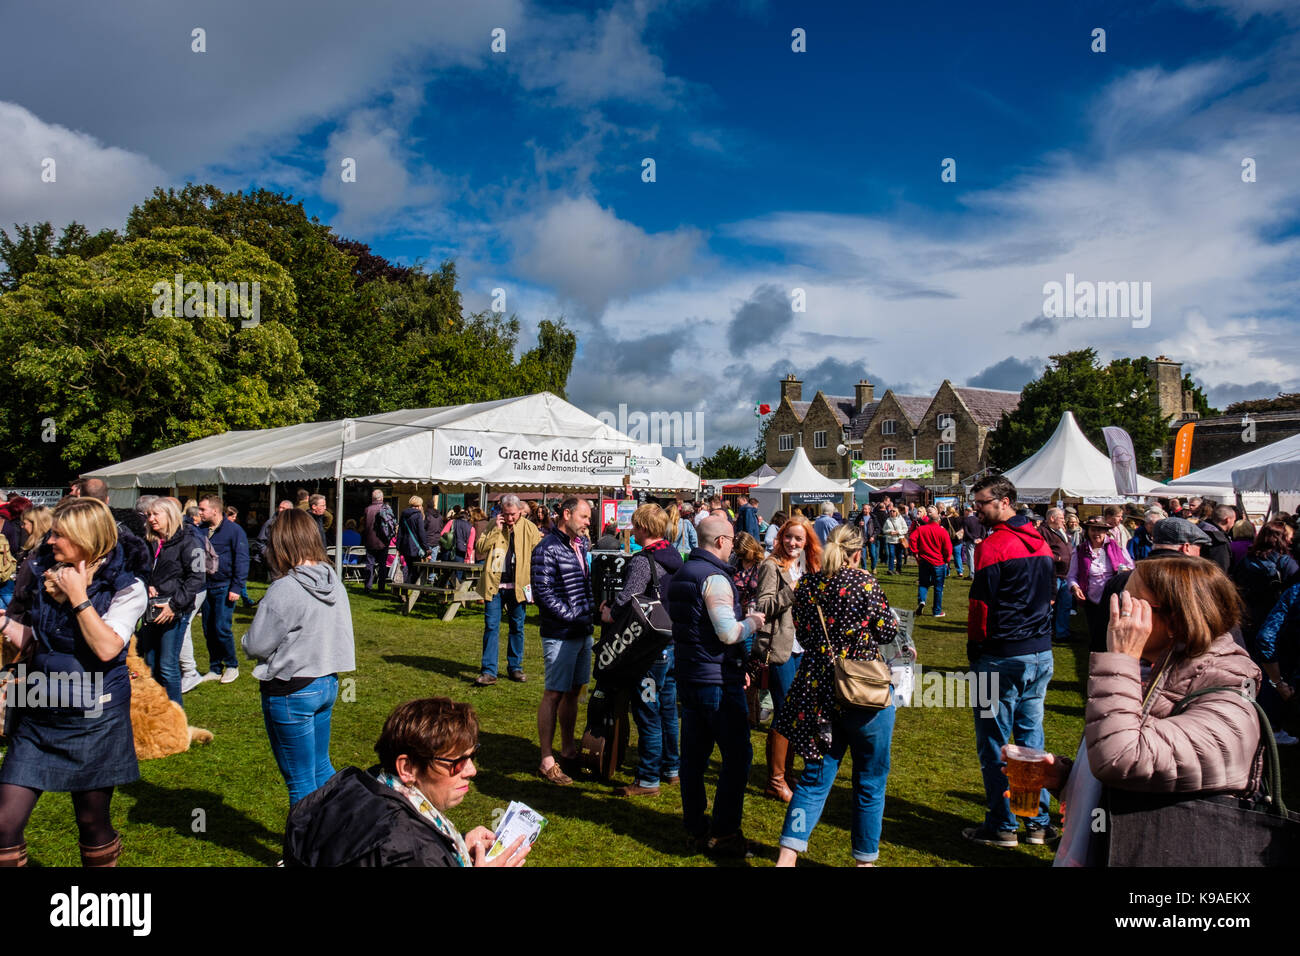 VIsitors at the 2017 Ludlow Food Festival, Ludlow, Shropshire, UK - Stock Image